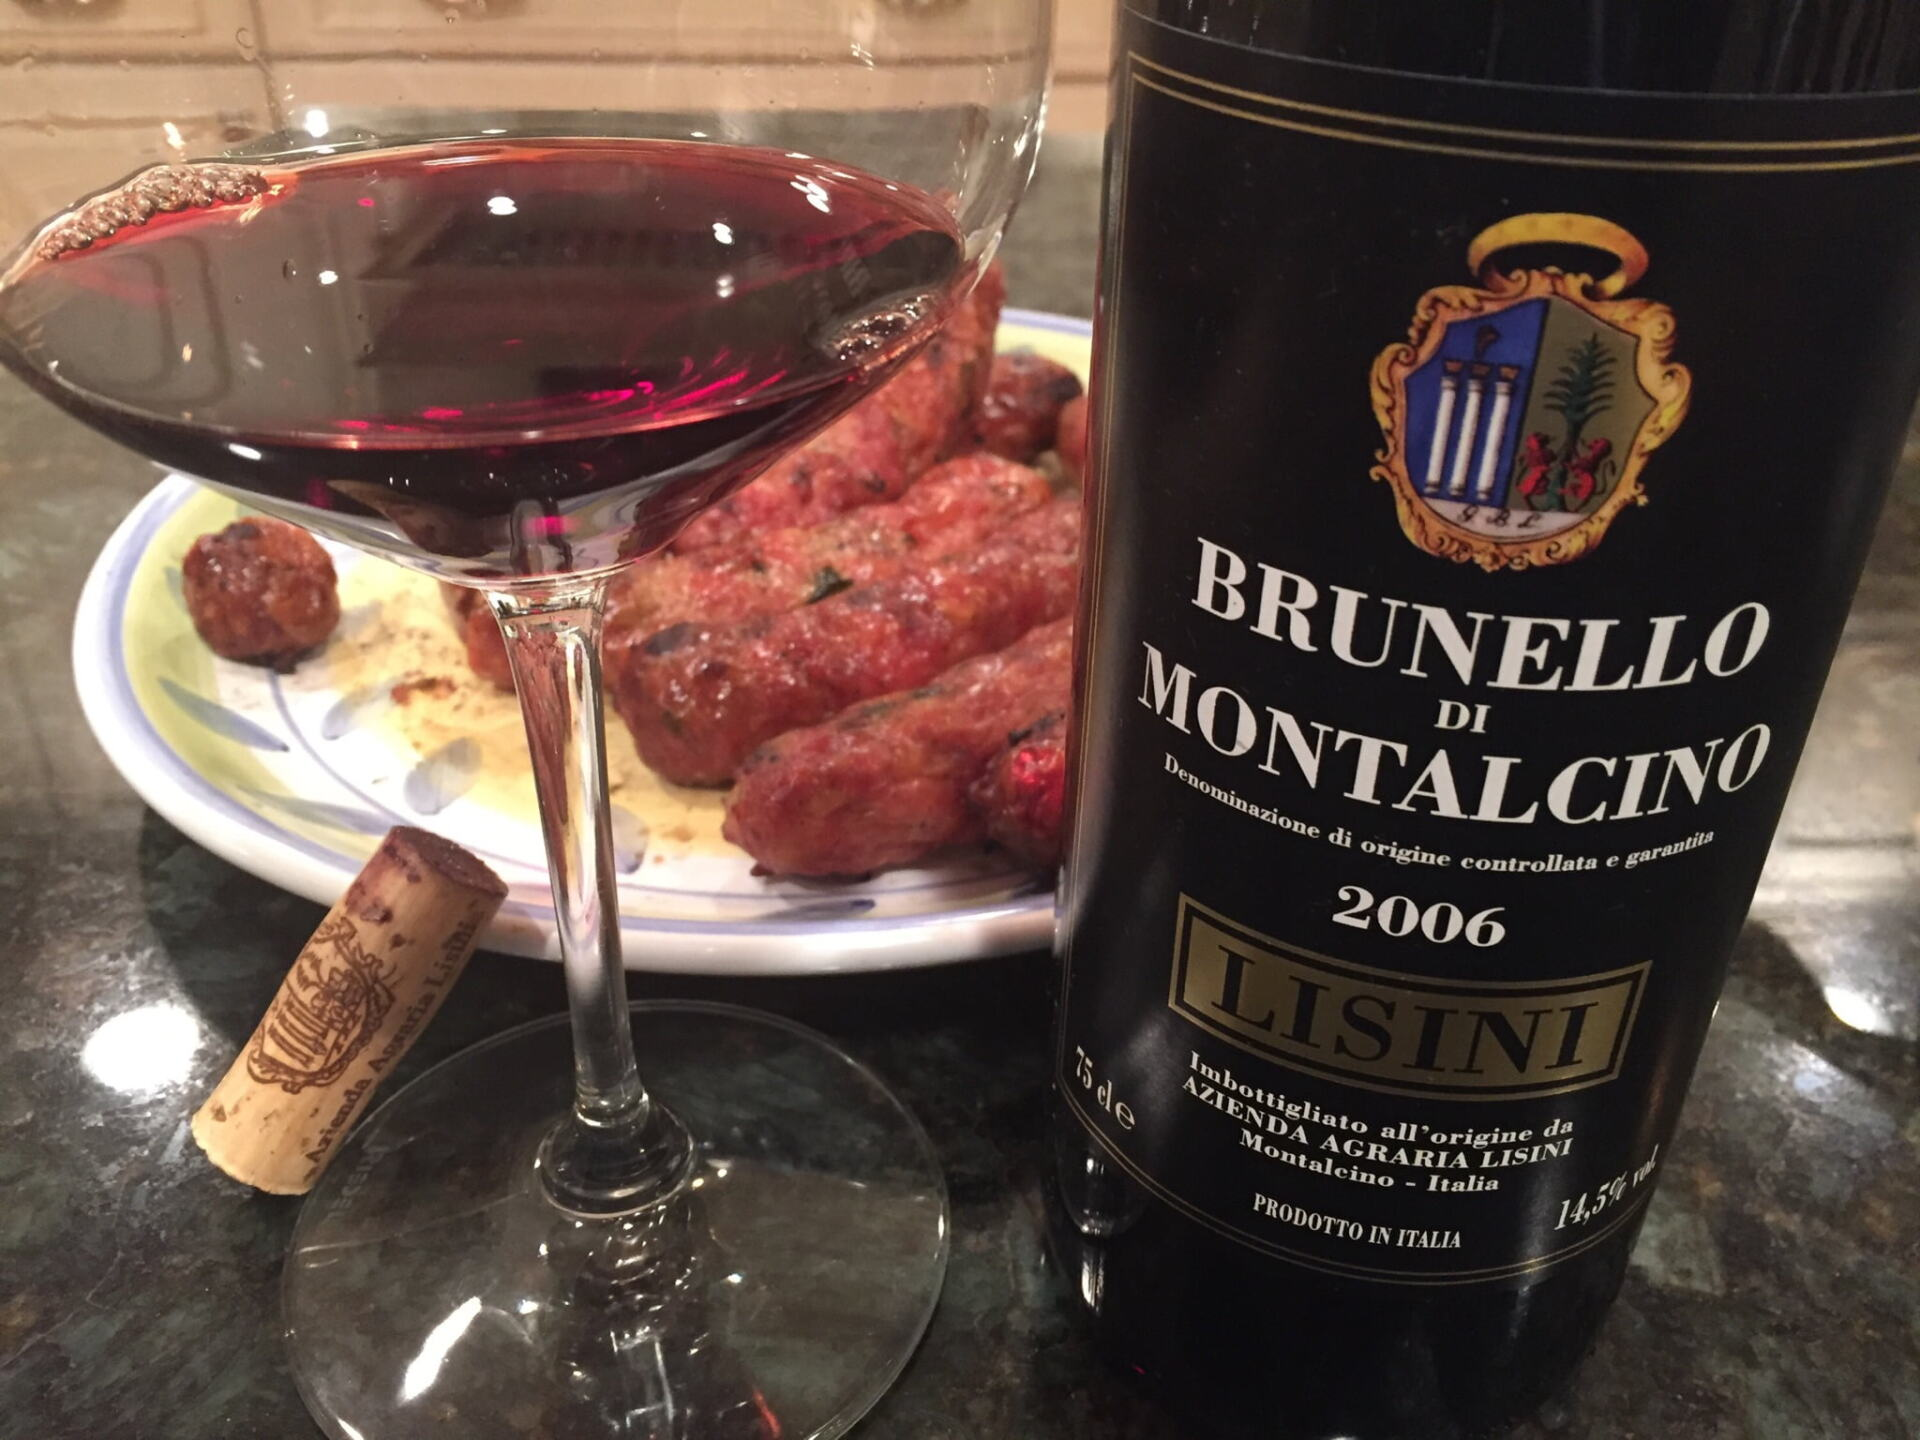 Brunello bottle with glass of red wine and grilled sausage